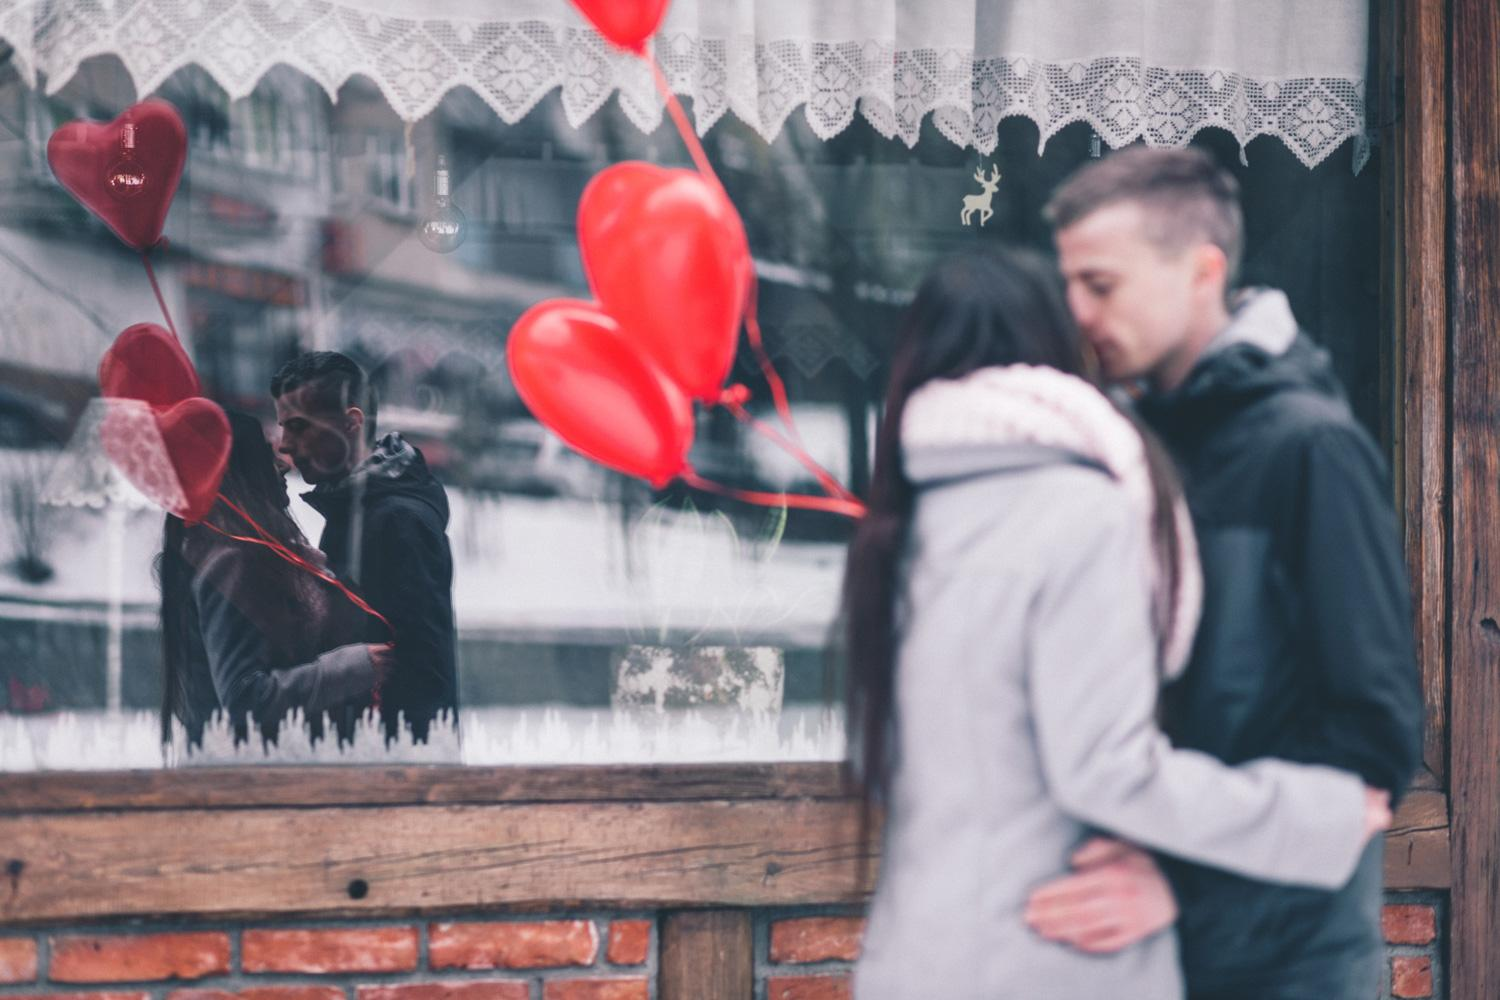 A couple holding red hear balloons kisses outside a shop in winter